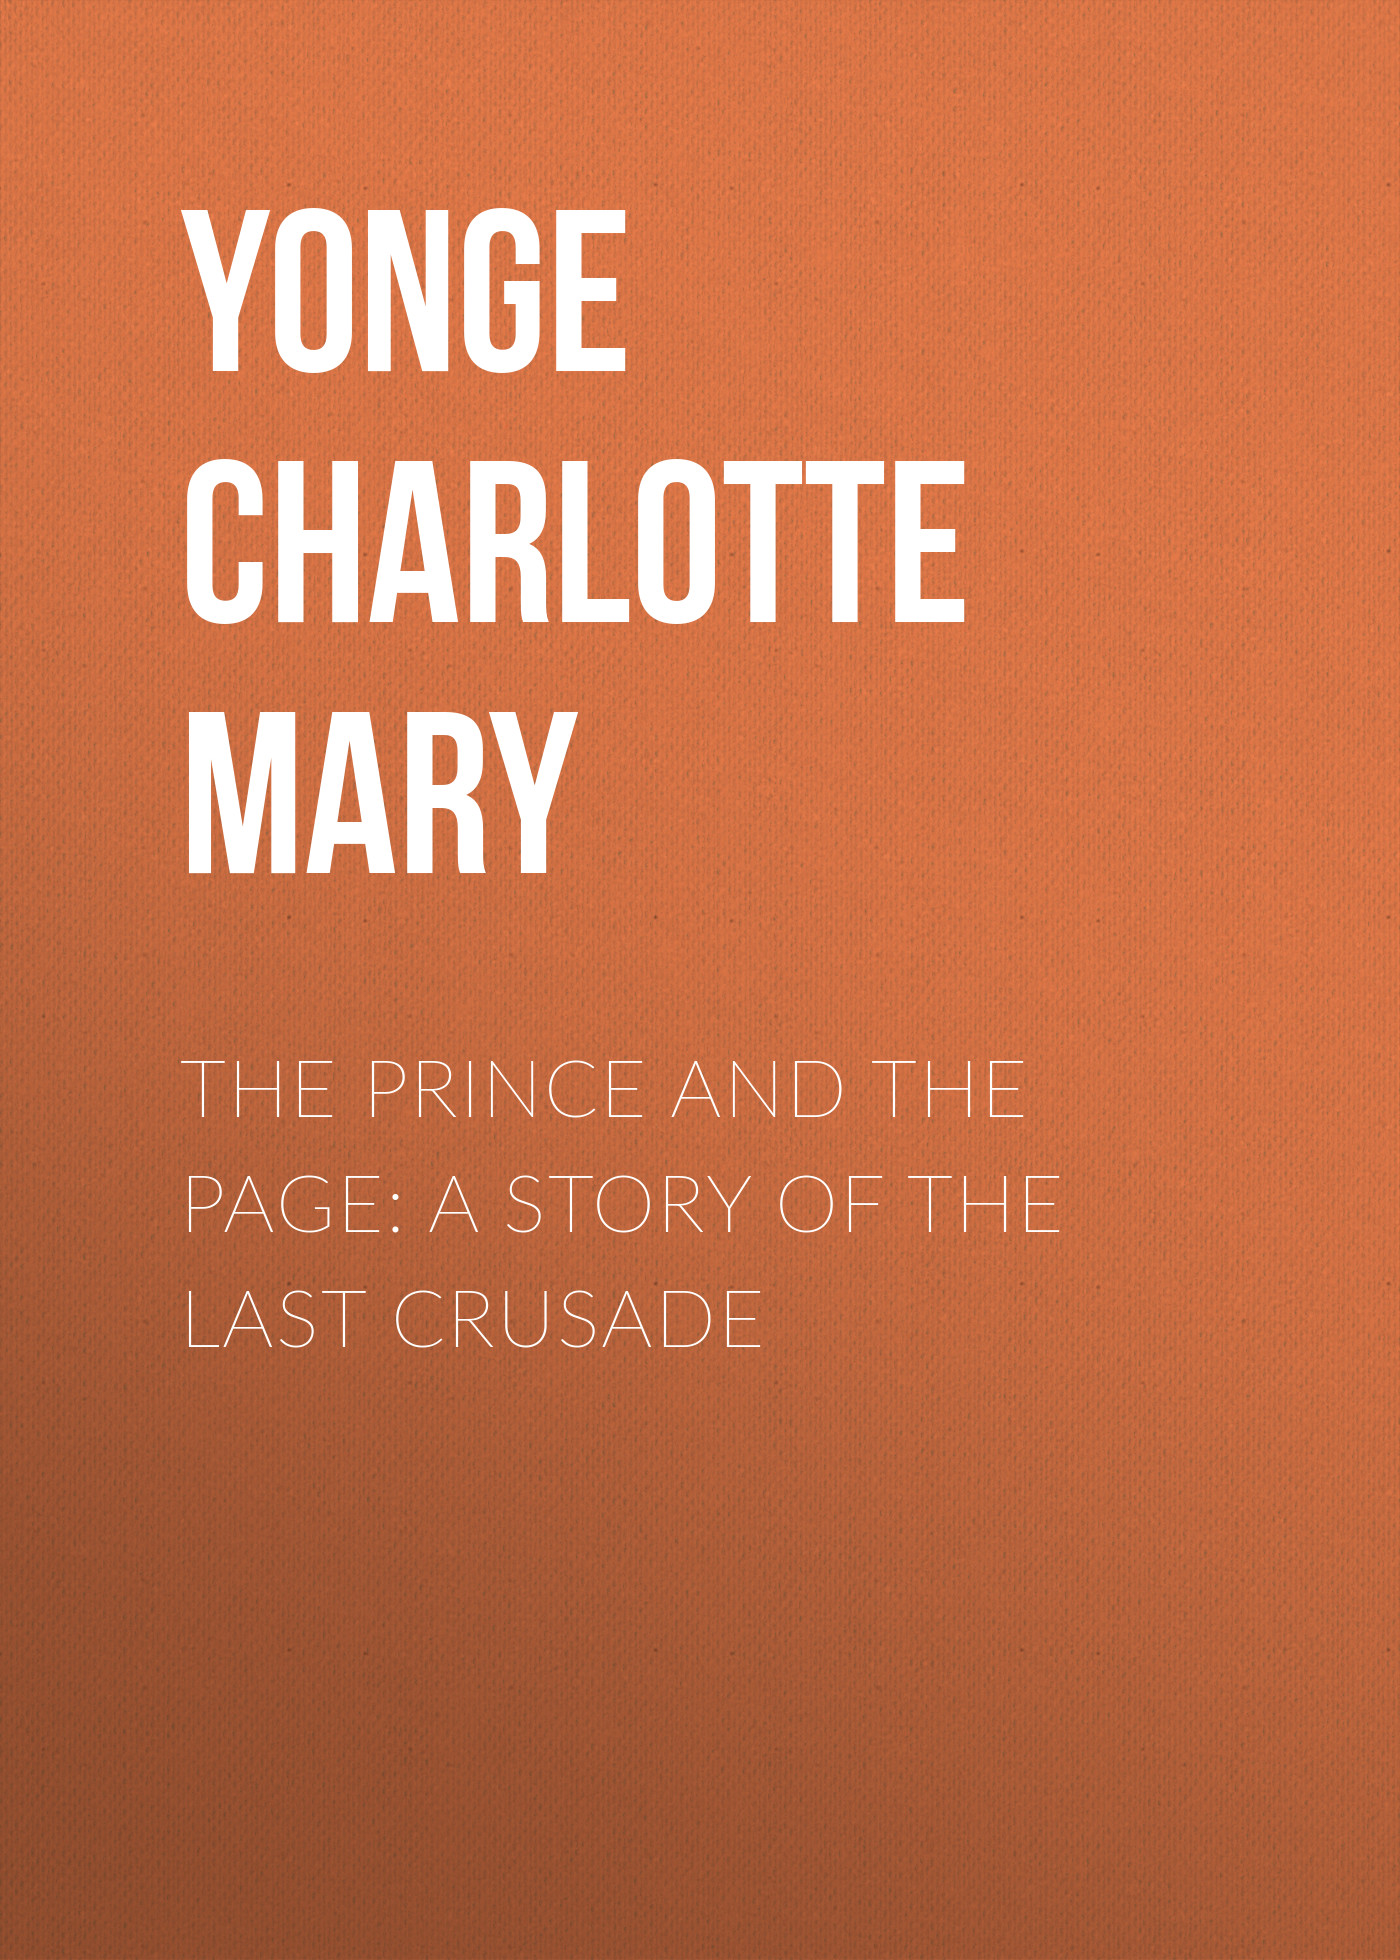 Yonge Charlotte Mary The Prince and the Page: A Story of the Last Crusade teri b racey master of the storm journal mindful writing and sketching for self mastery page 5 page 5